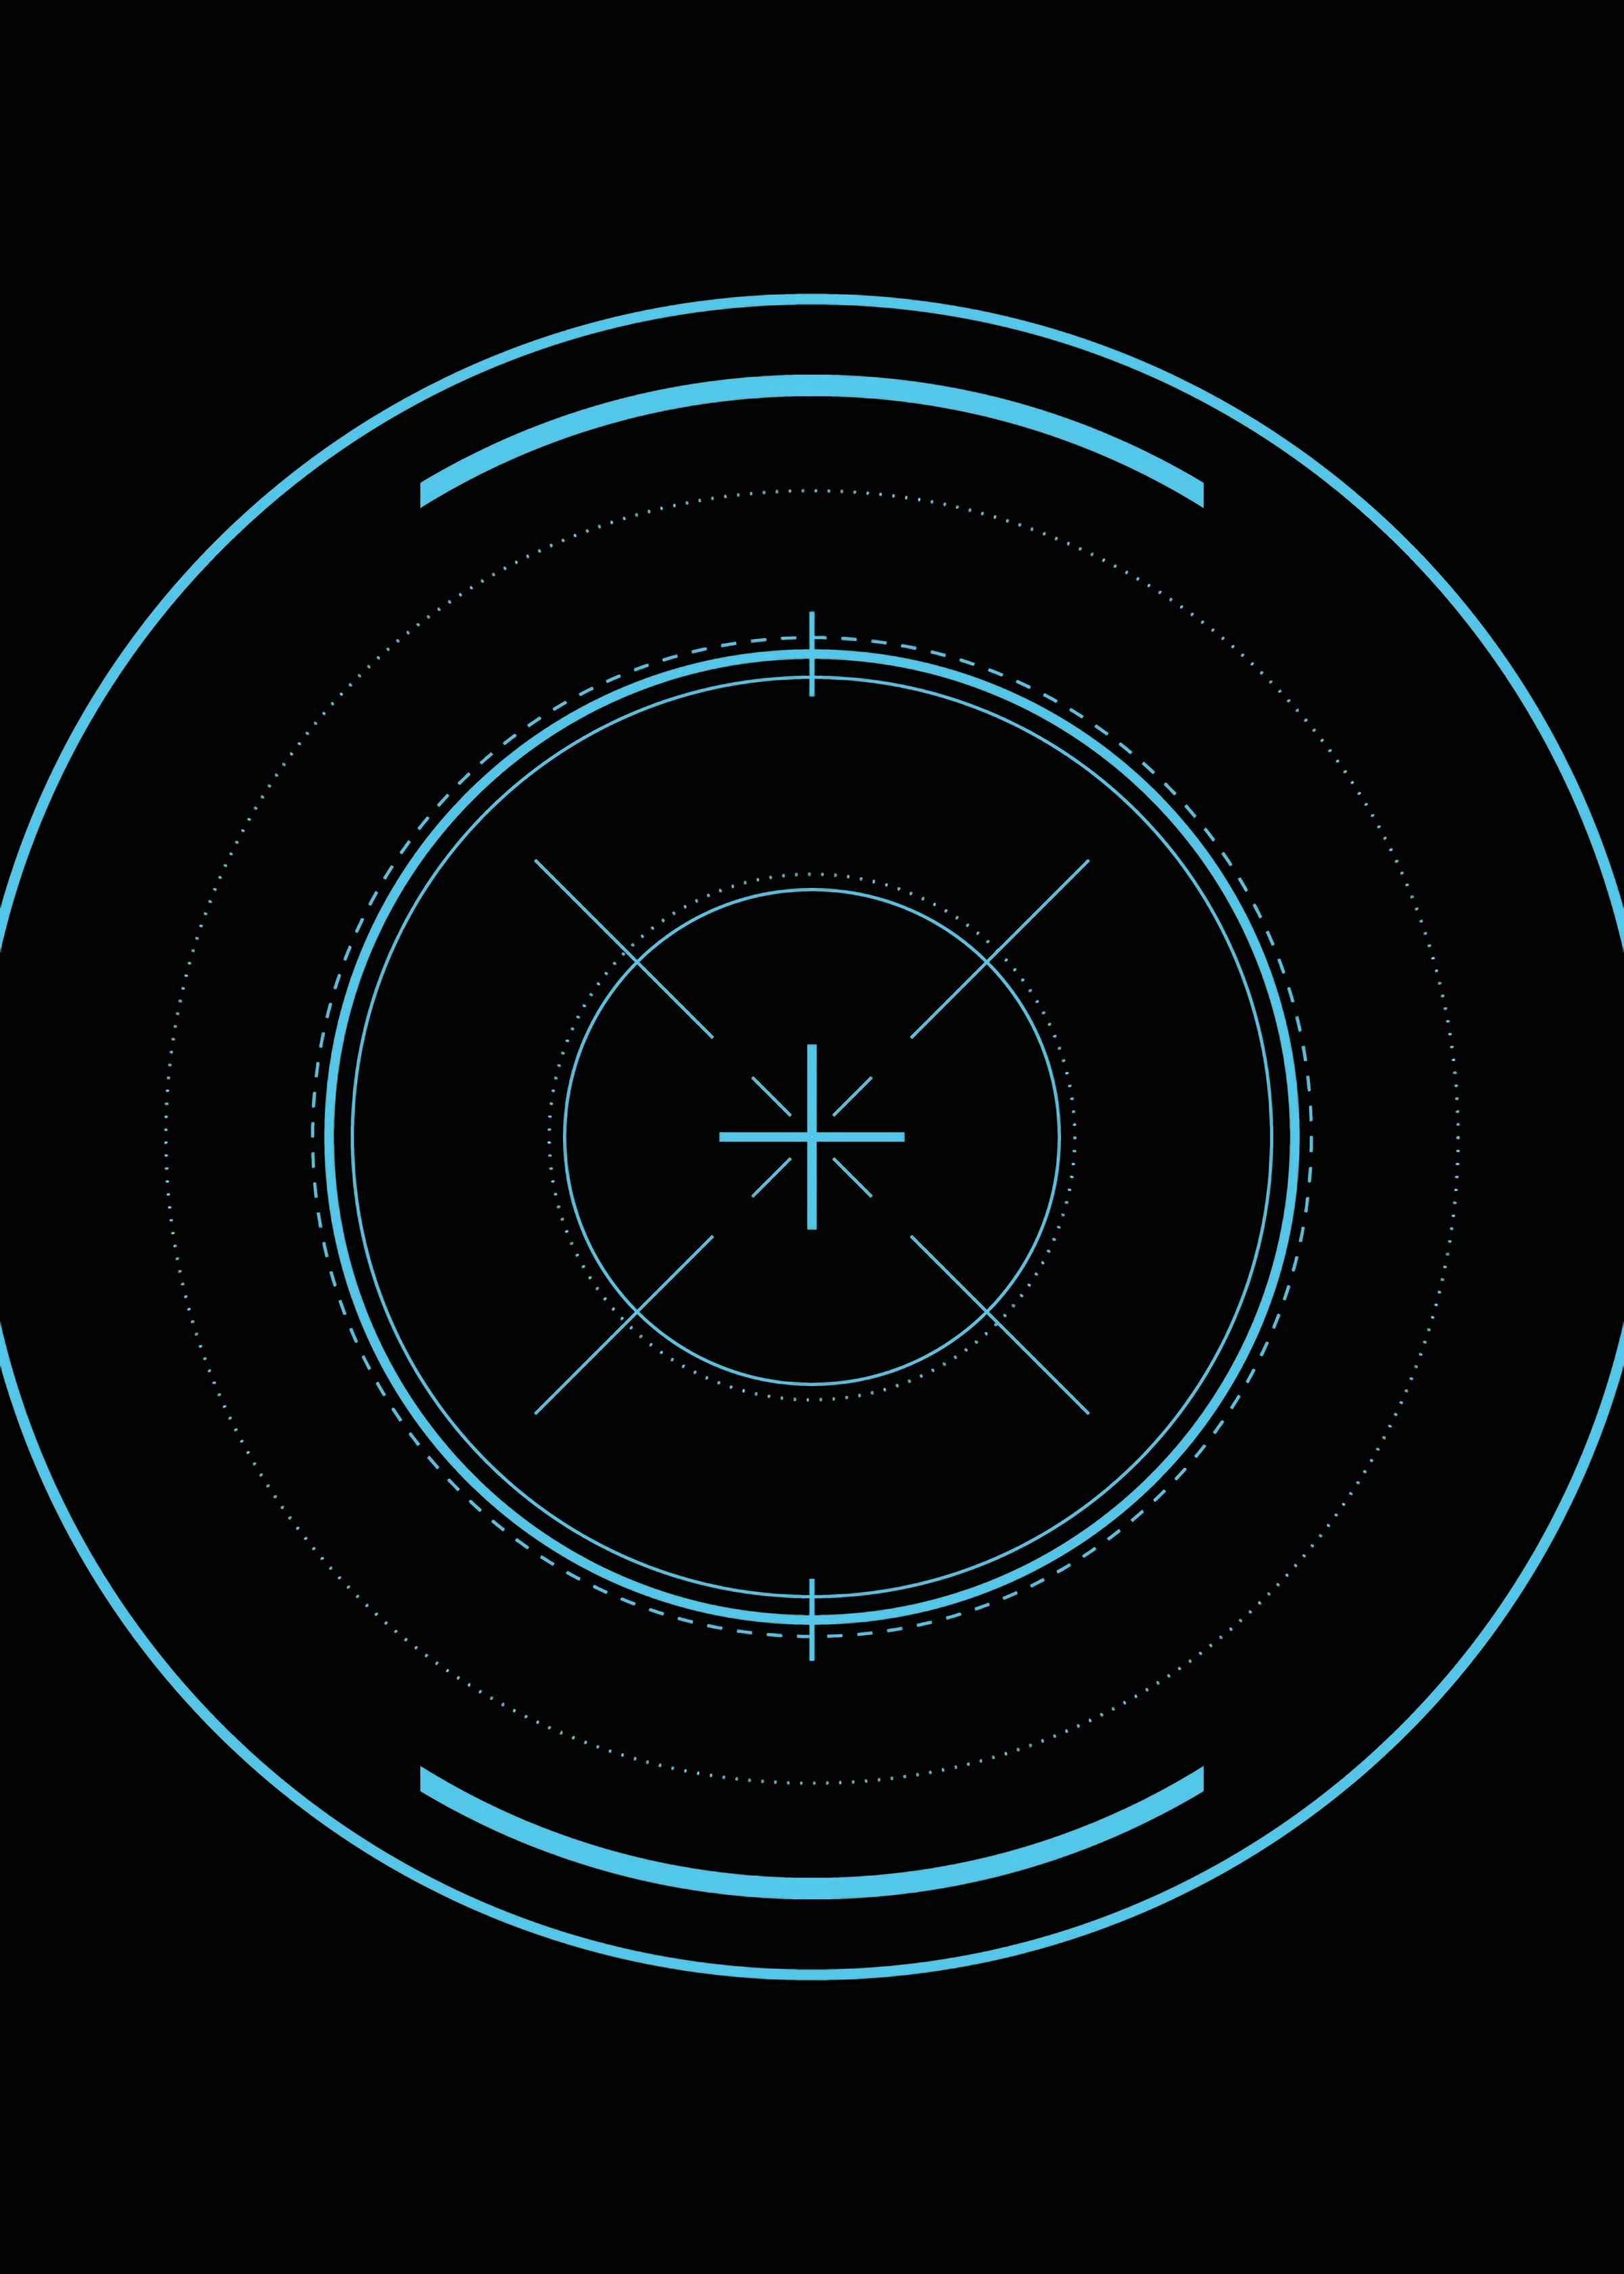 116426 download wallpaper Dark, Circles, Markup, Lines, Lens, Centre, Center, Optical Sight screensavers and pictures for free